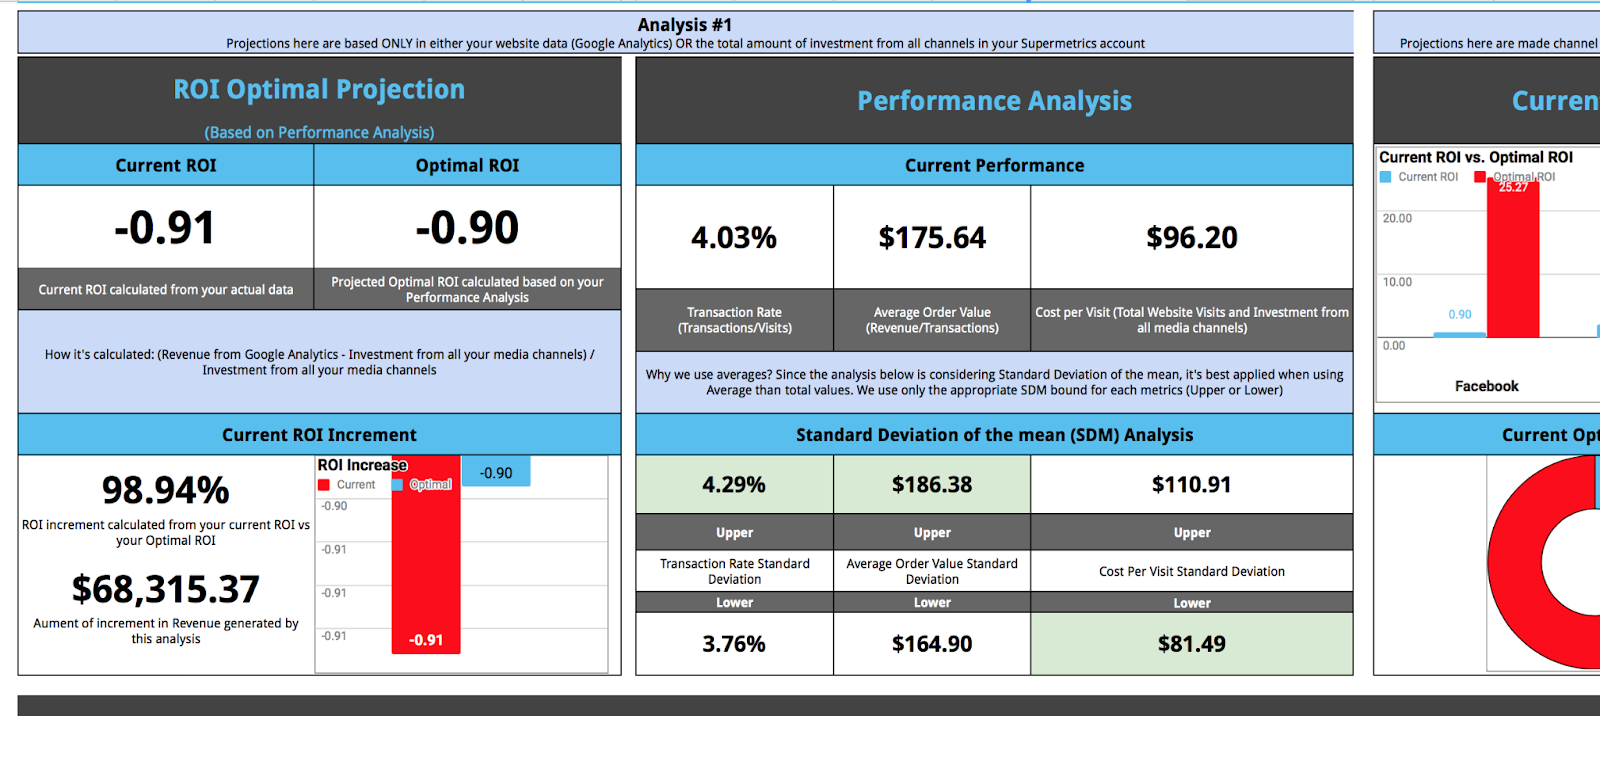 Ecommerce performance dashboard template by Gauge - Google Sheets